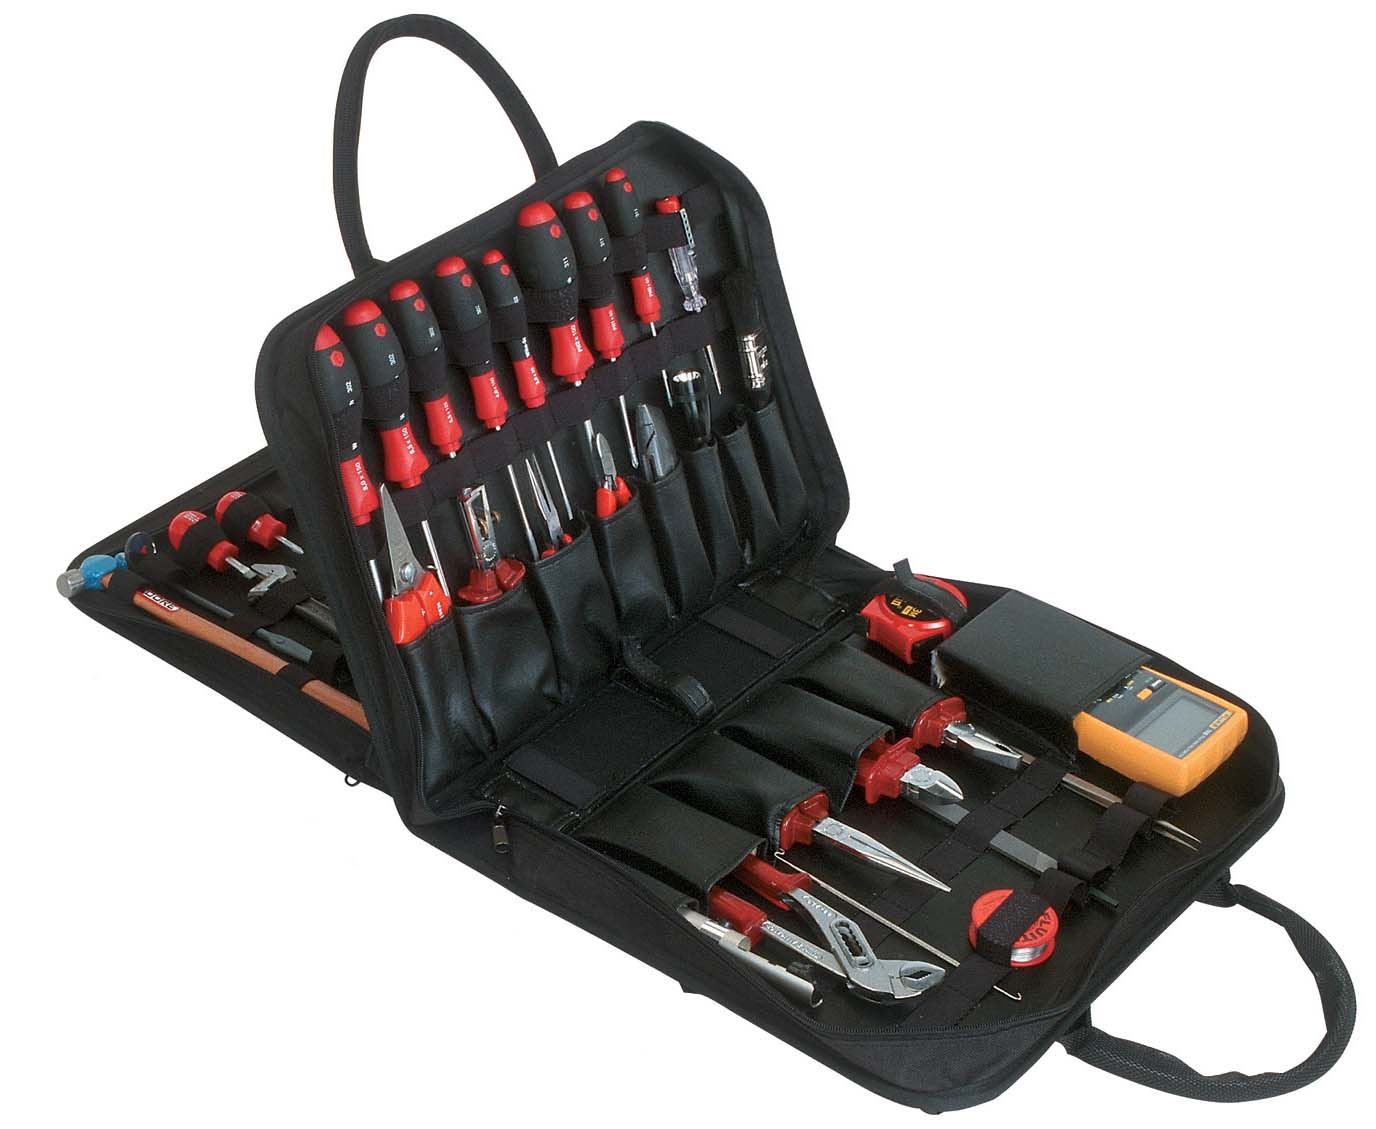 Electronic Instruments And Tools : Electronic tool kits